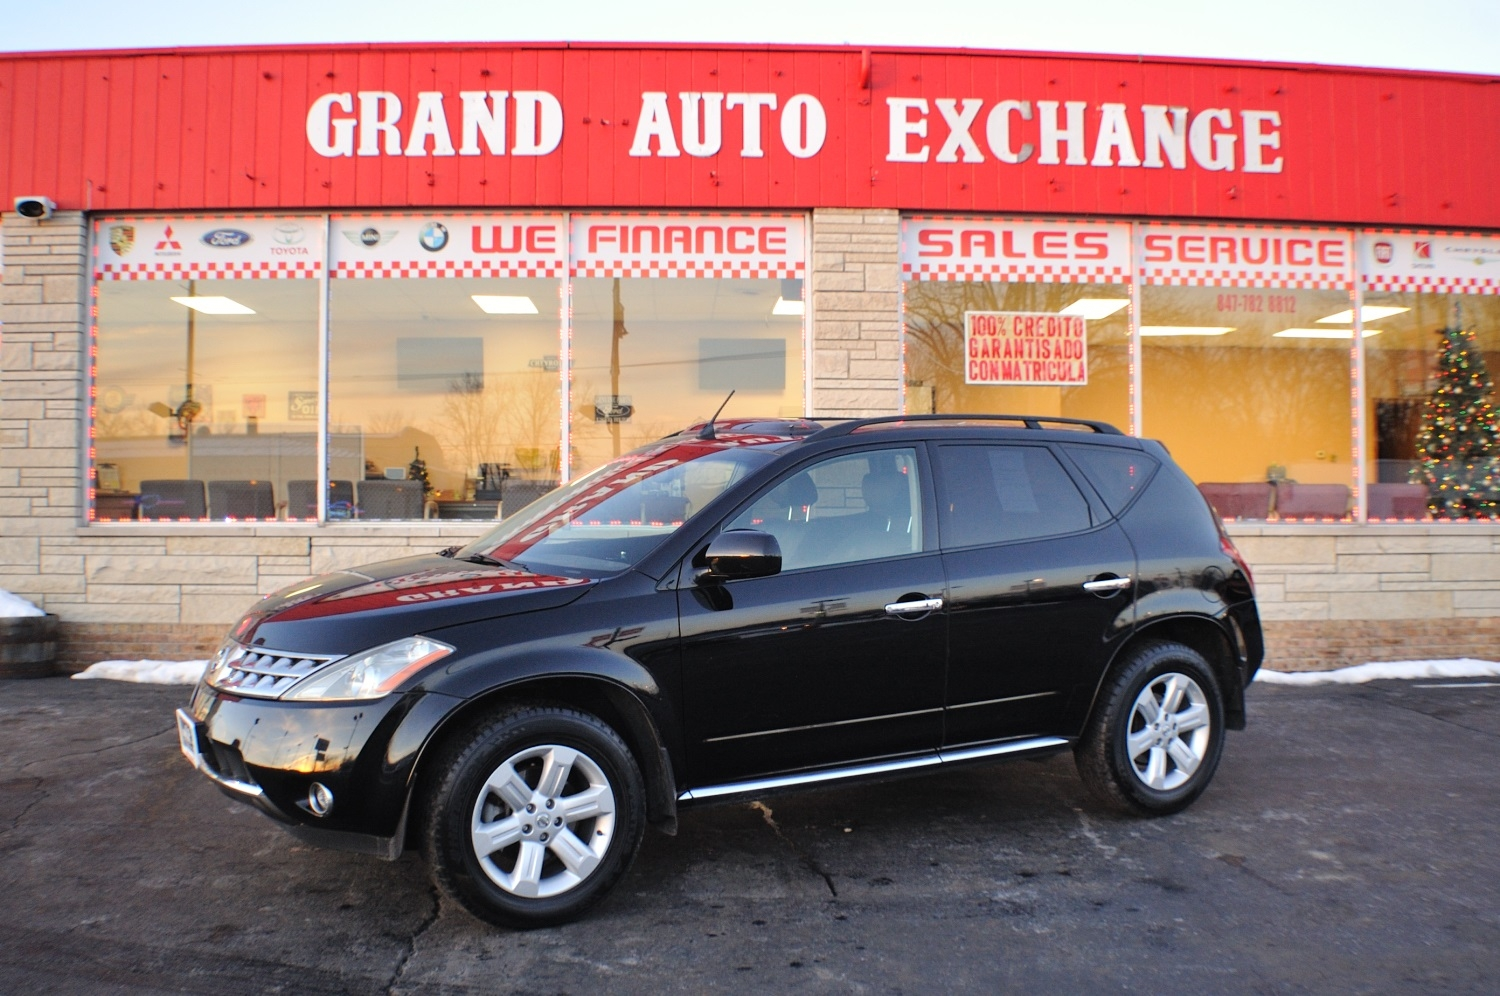 2006 Nissan Murano SL Black AWD used SUV Sale Antioch Zion Waukegan Lake County Illinois